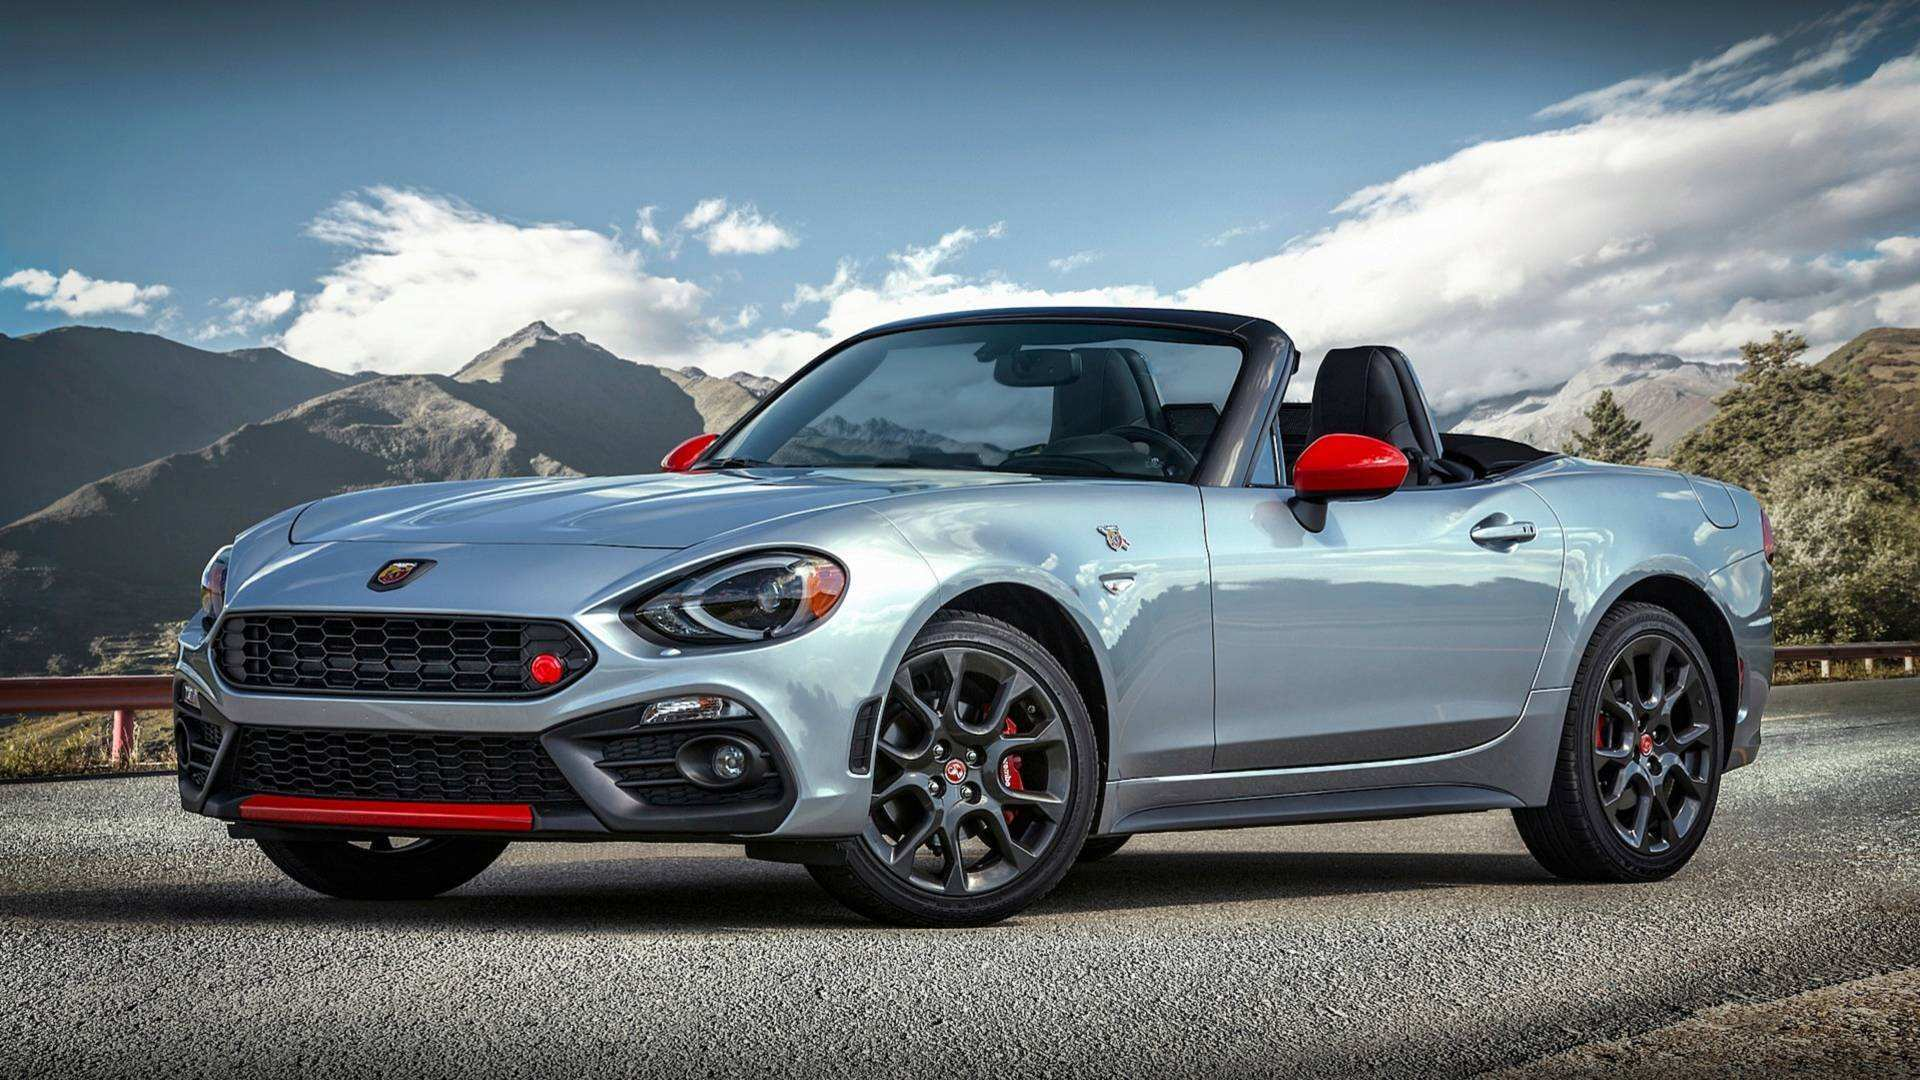 18 New 2019 Fiat 124 Changes Configurations for 2019 Fiat 124 Changes